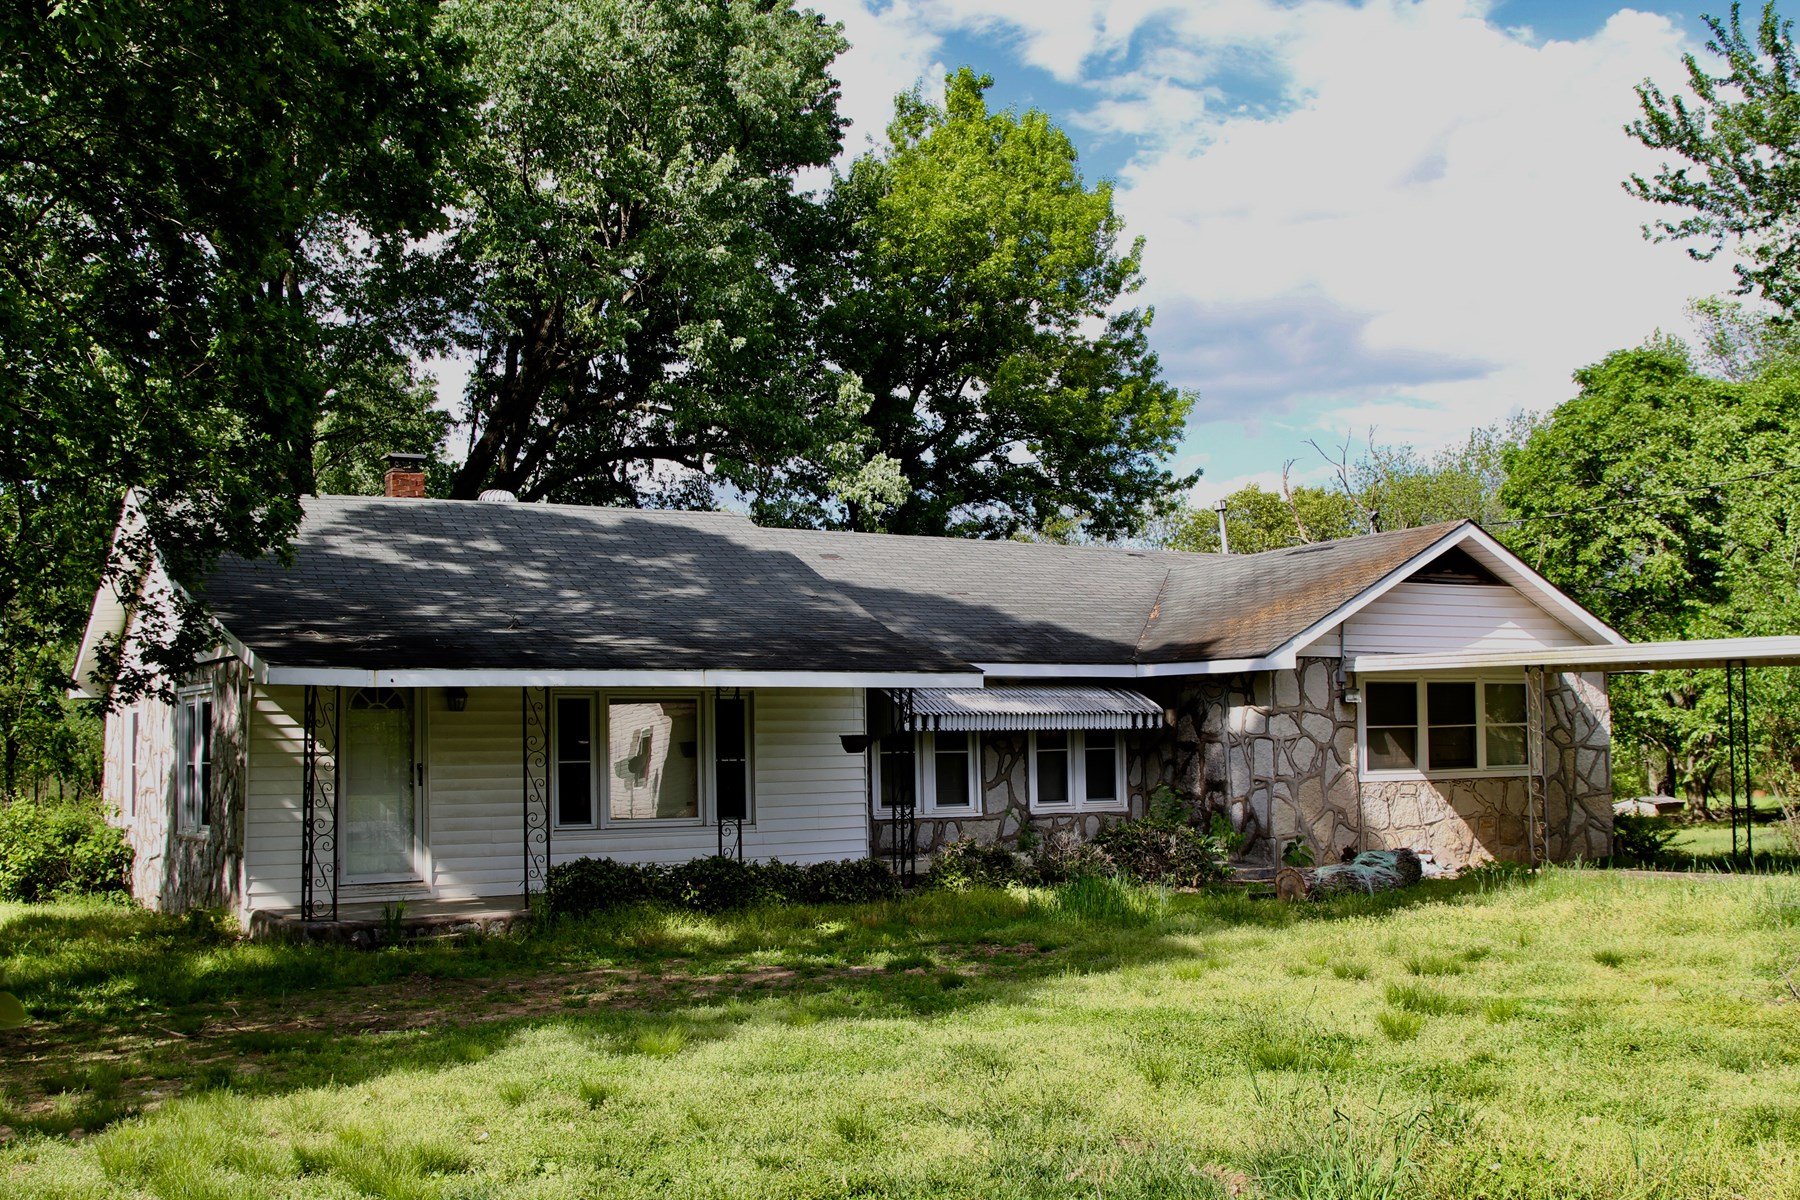 NE OKLAHOMA HOME ON .82 ACRES +/-; AUCTION MAY 31 @ 4 PM